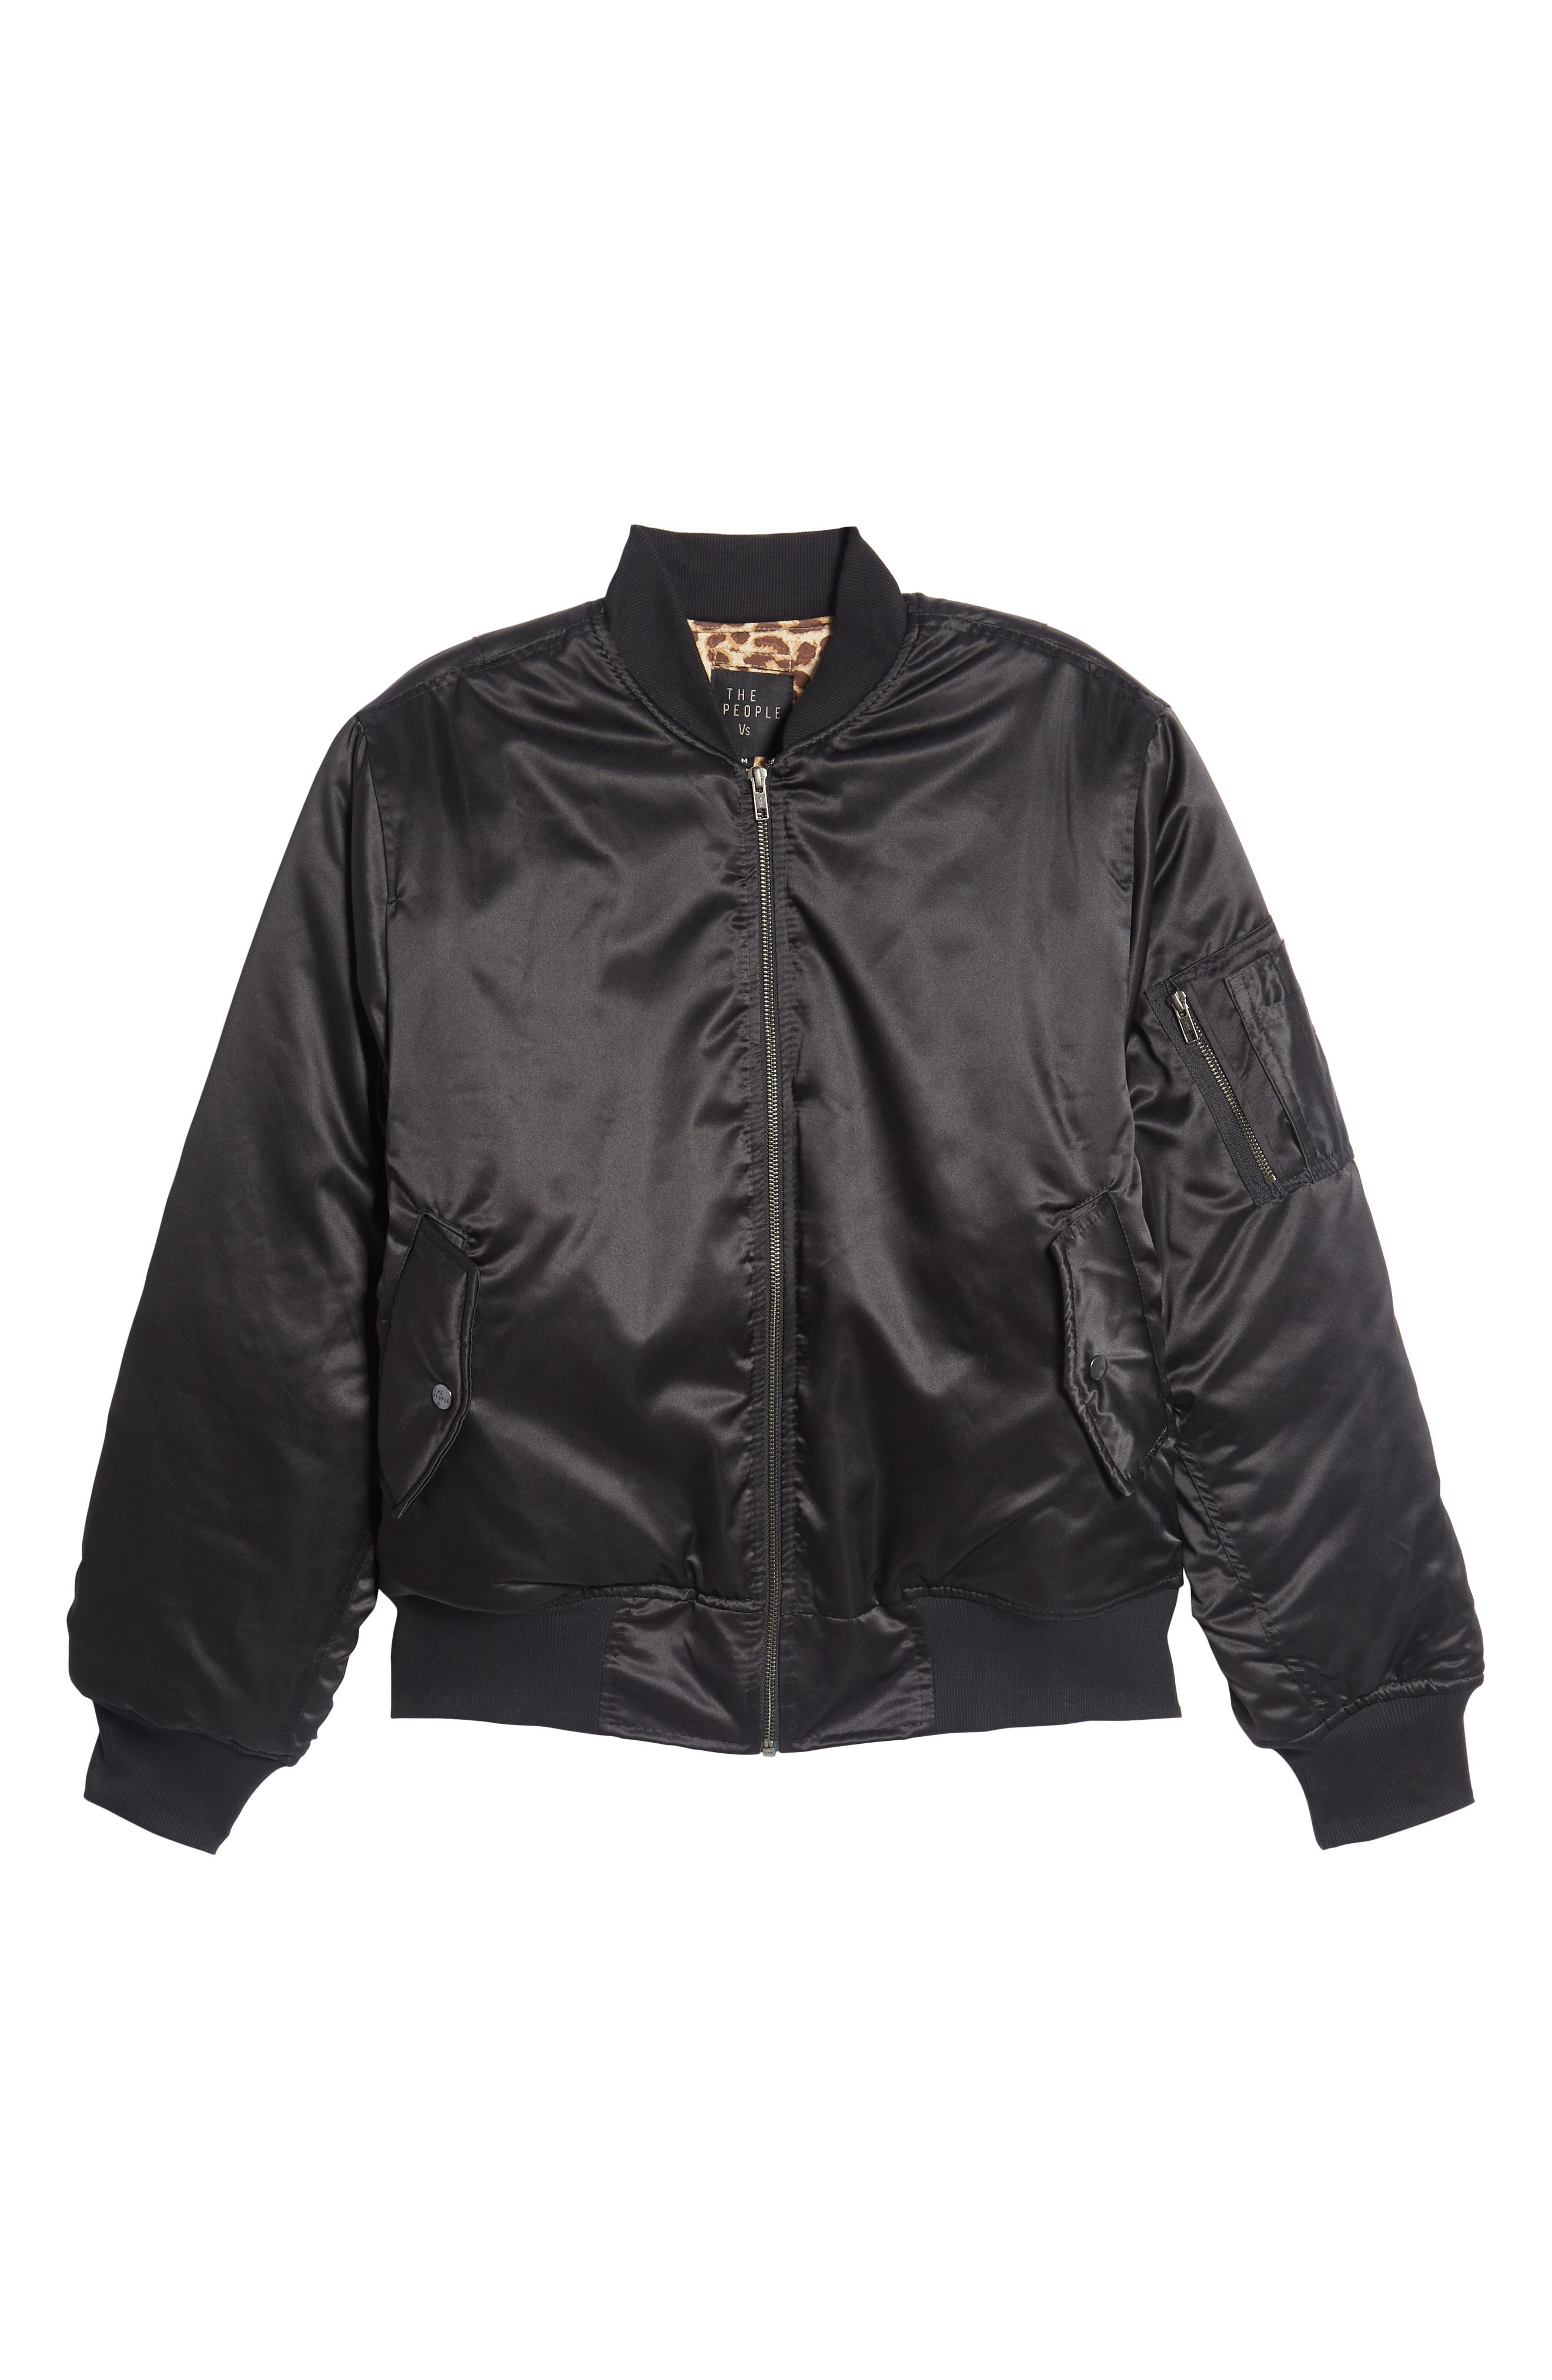 Maverick Reversible Bomber Jacket,                             Alternate thumbnail 6, color,                             BLACK/ JUNGLE CAT